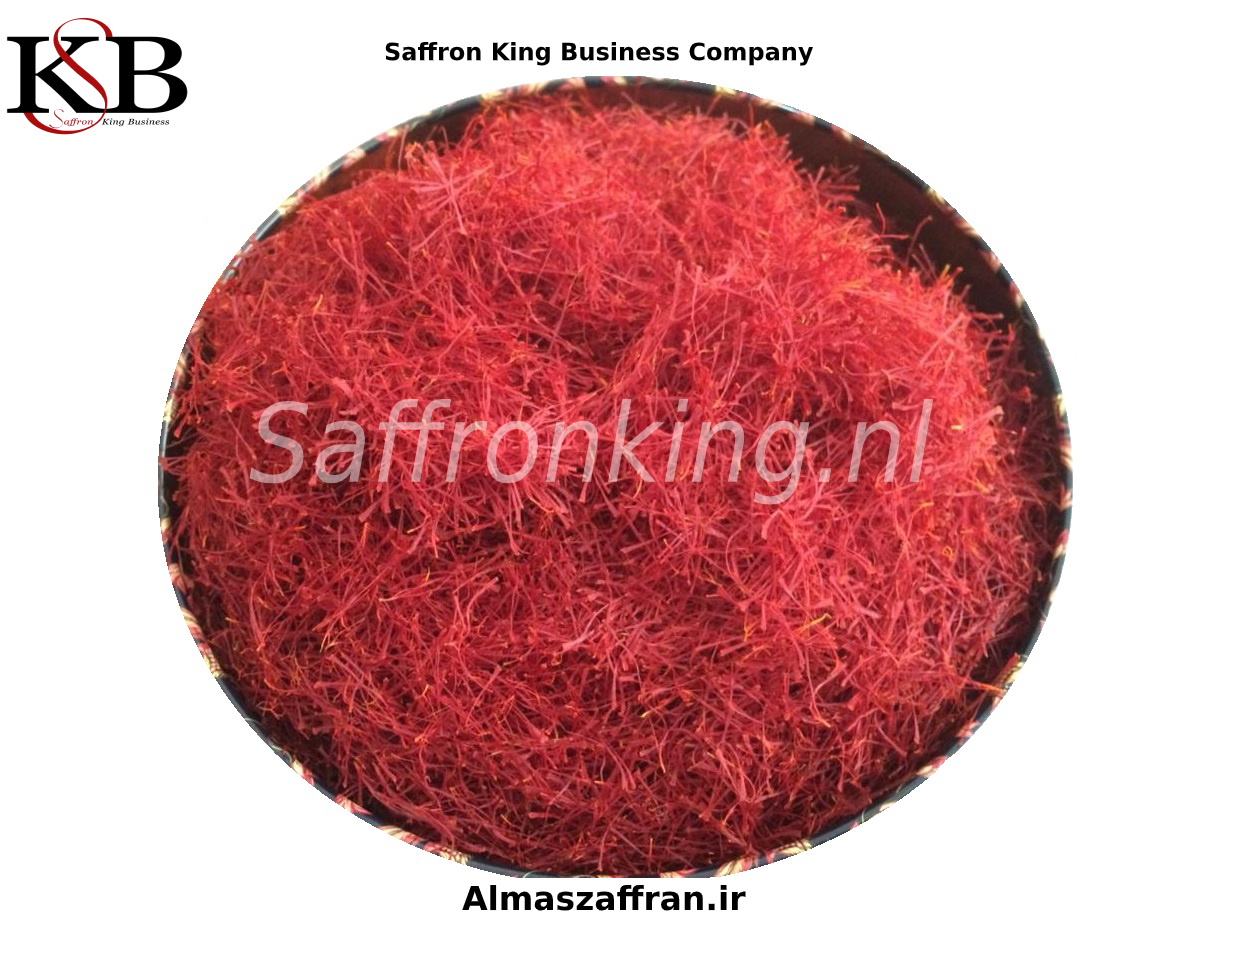 Buy bulk saffron and wholesale saffron